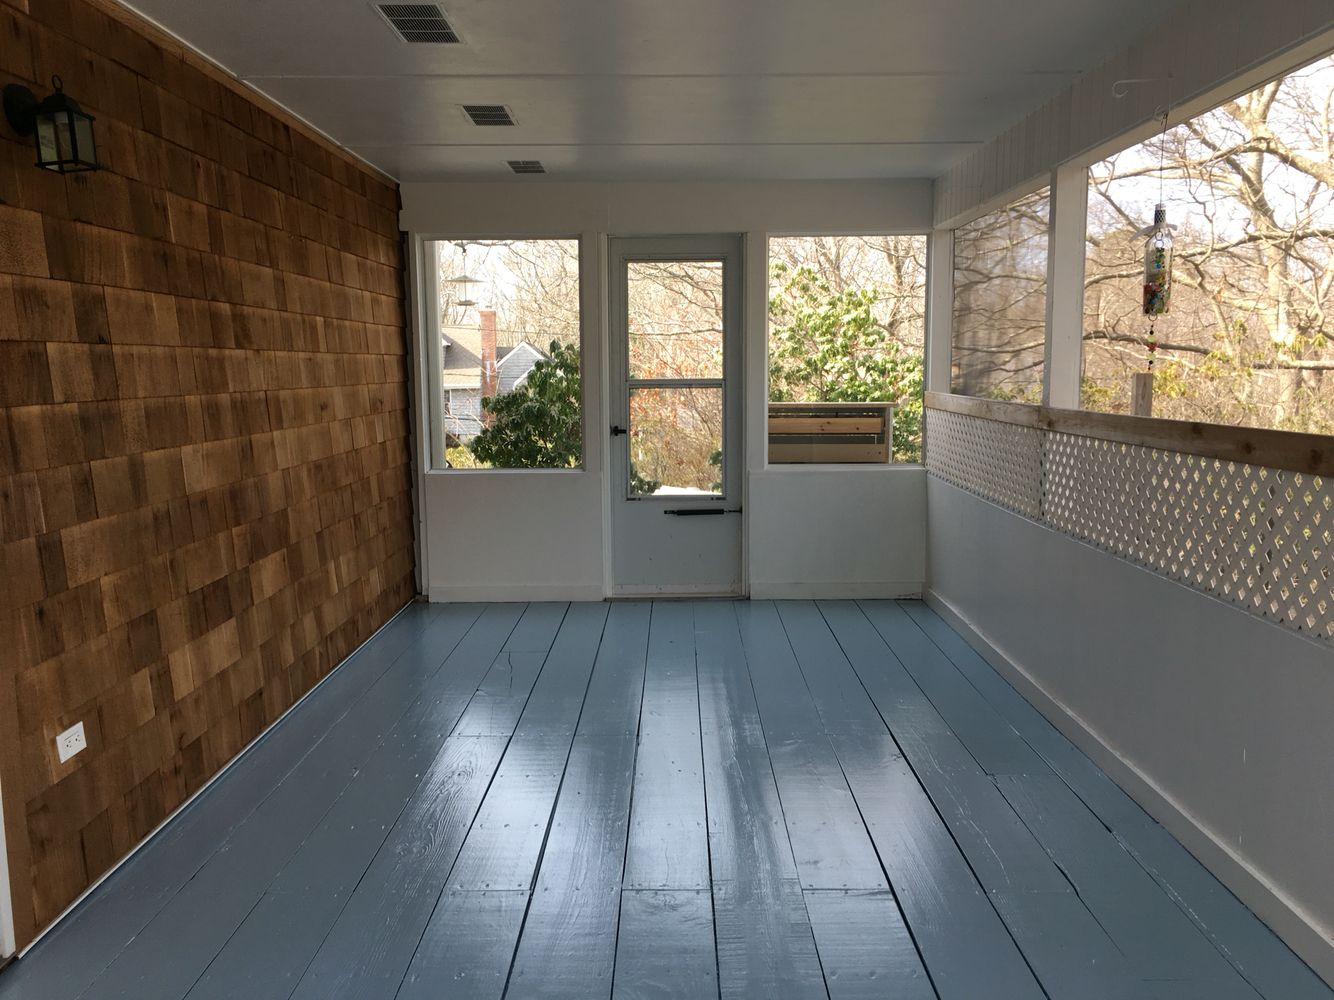 Amazing Behr Patio Paint #3   Behr Deck And Patio Paint, Semi Gloss In  Nautical Blue. Love My New And